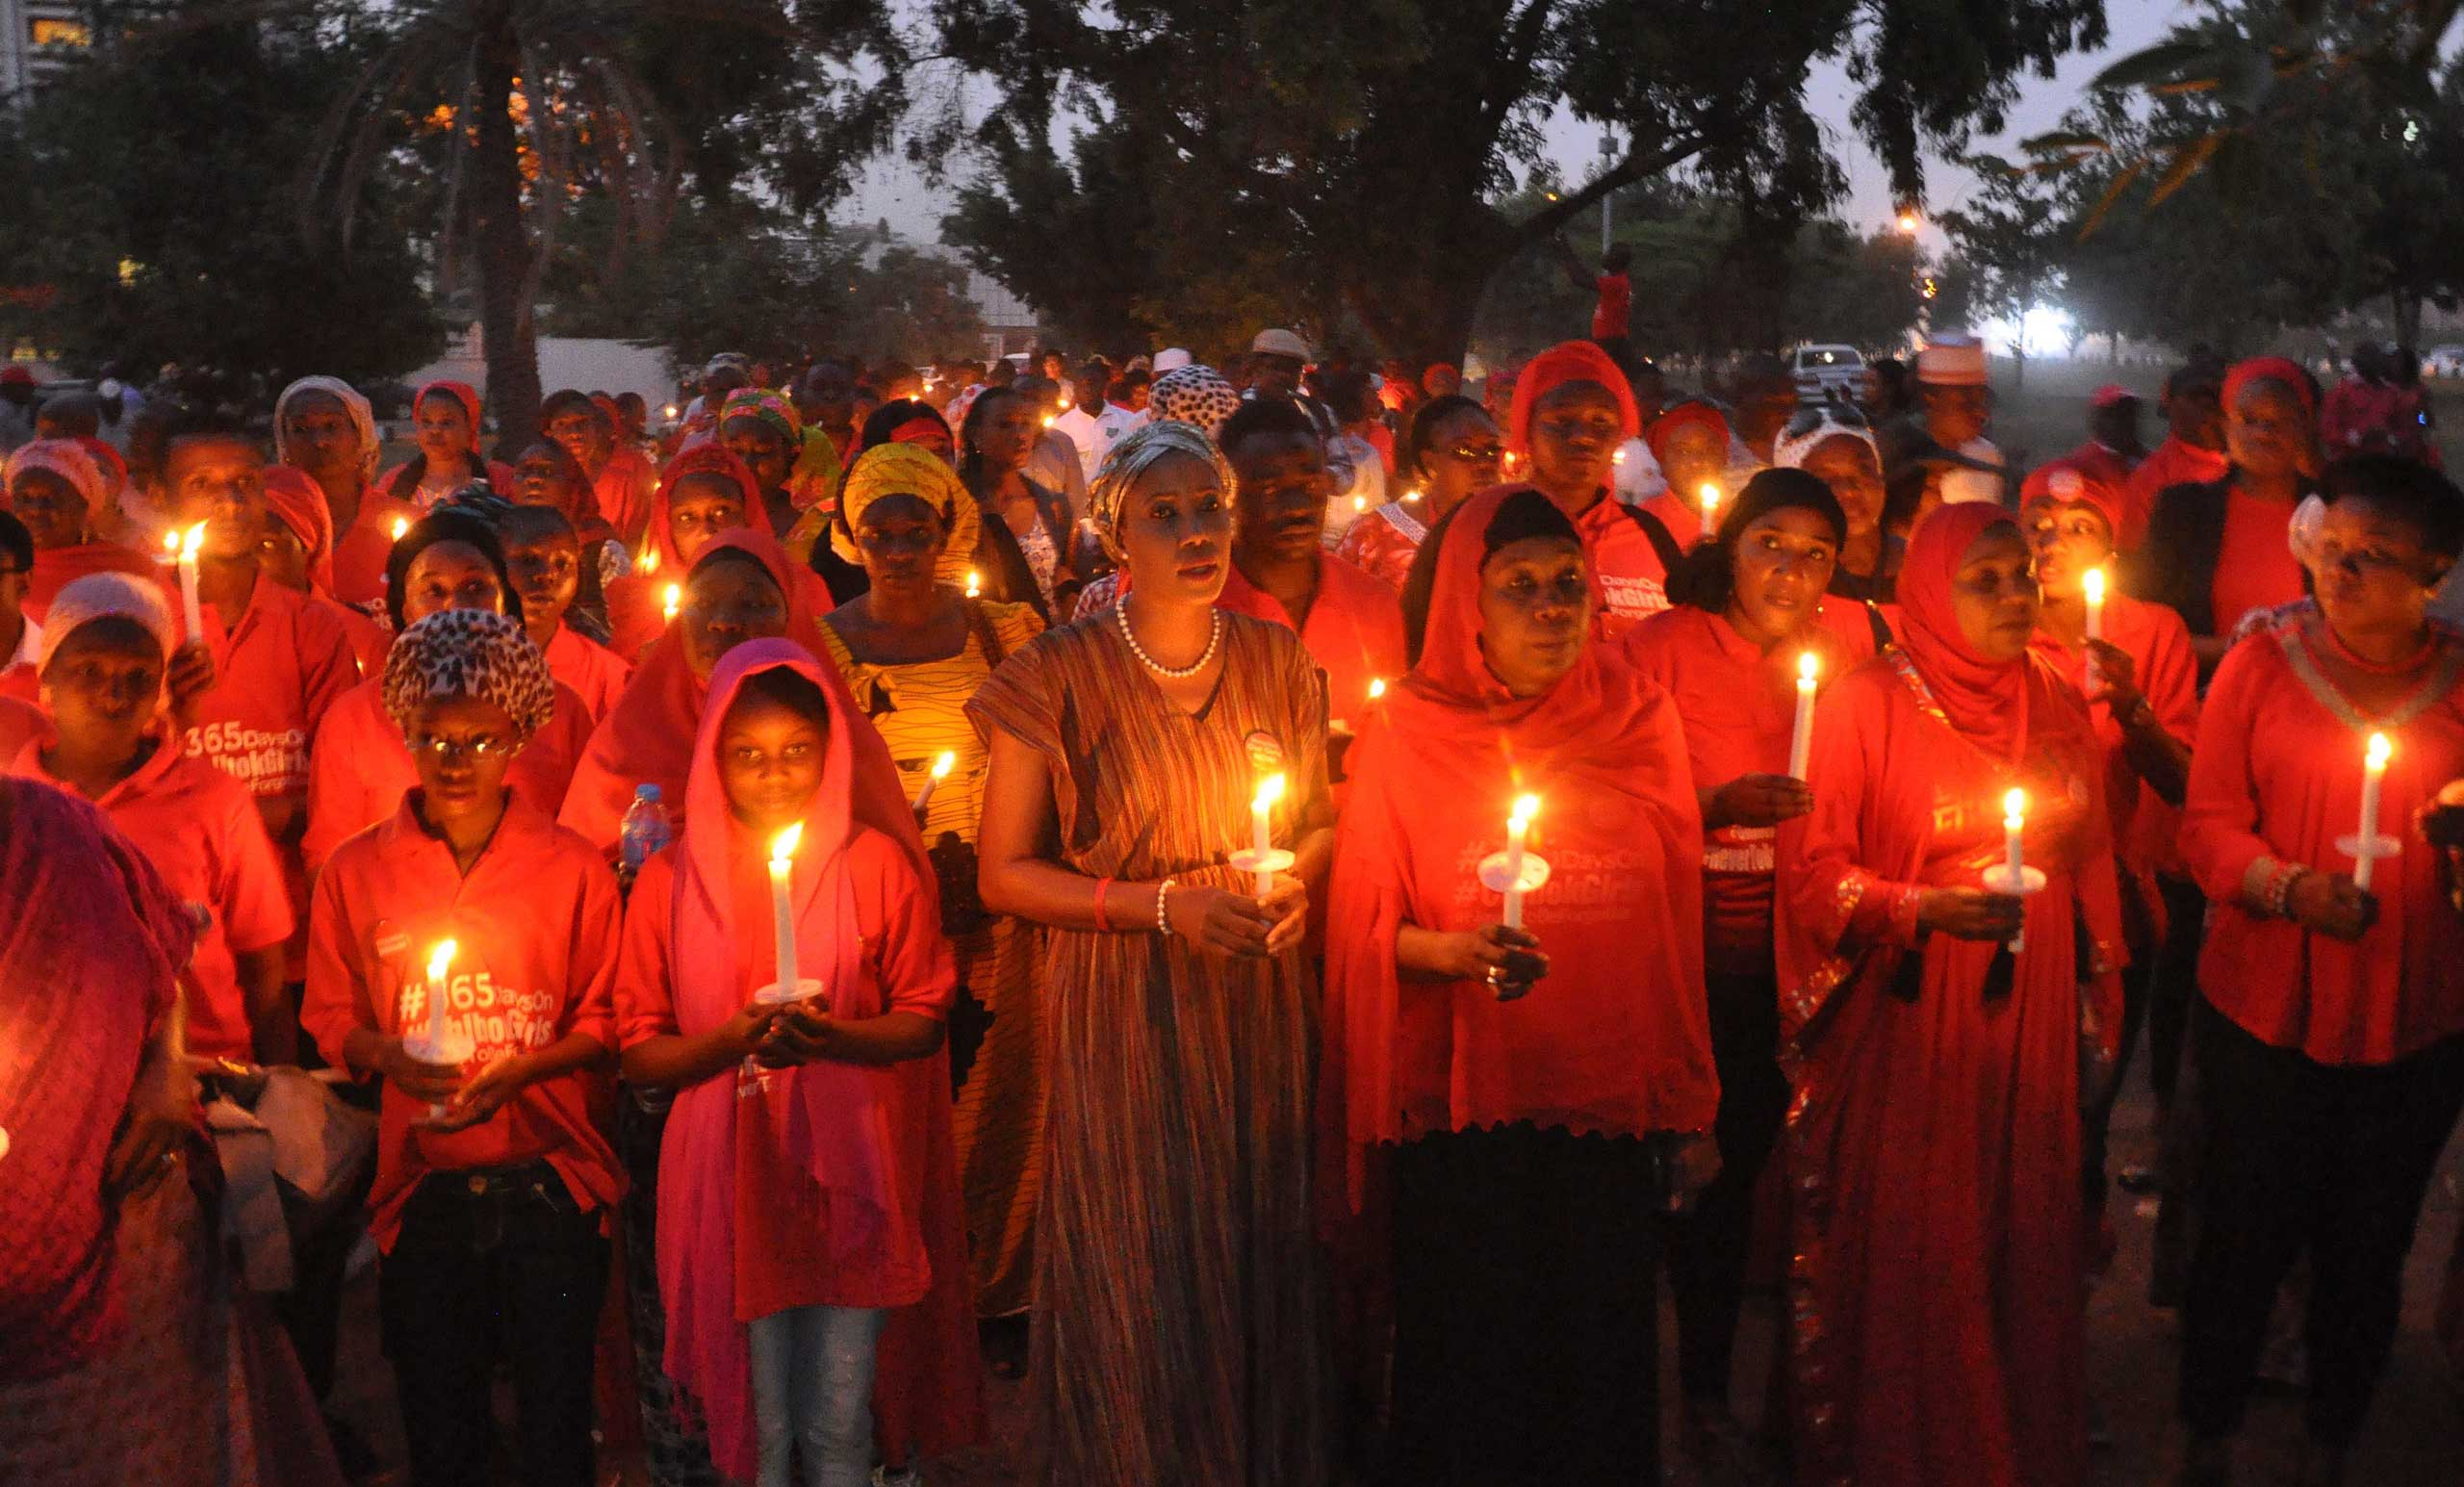 Nigerians holding candles during a vigil for the one year anniversary of the kidnapping of hundreds of Nigerian school girls in Chibok, Abuja, Nigeria on April 14, 2015.